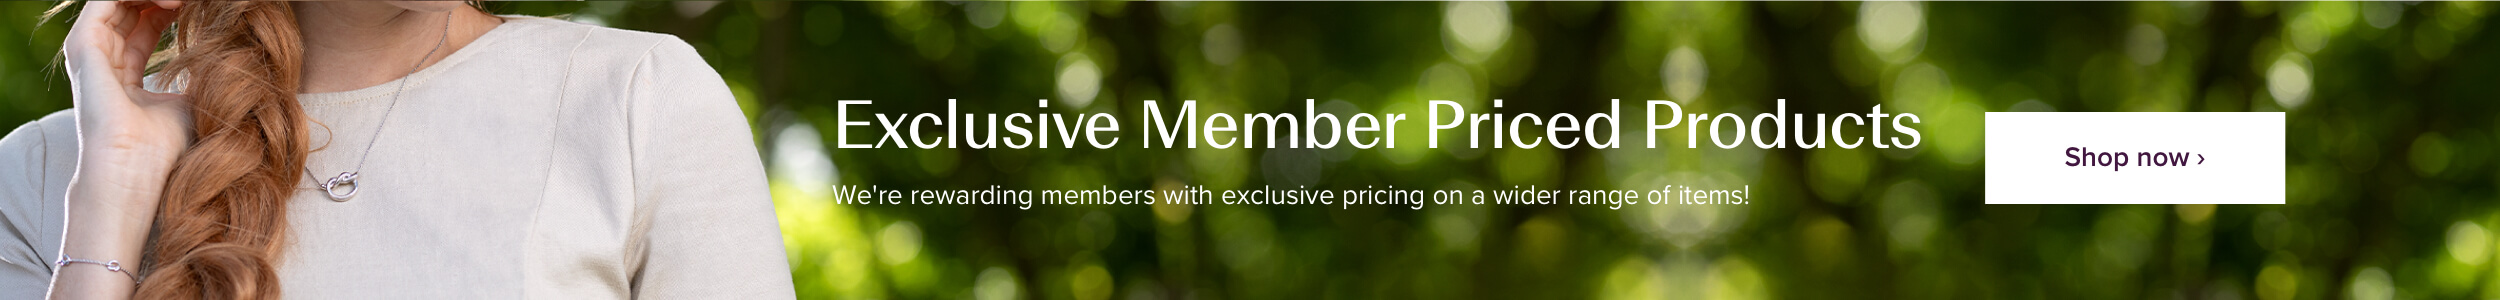 Exclusive Member Priced Products Slim Banner